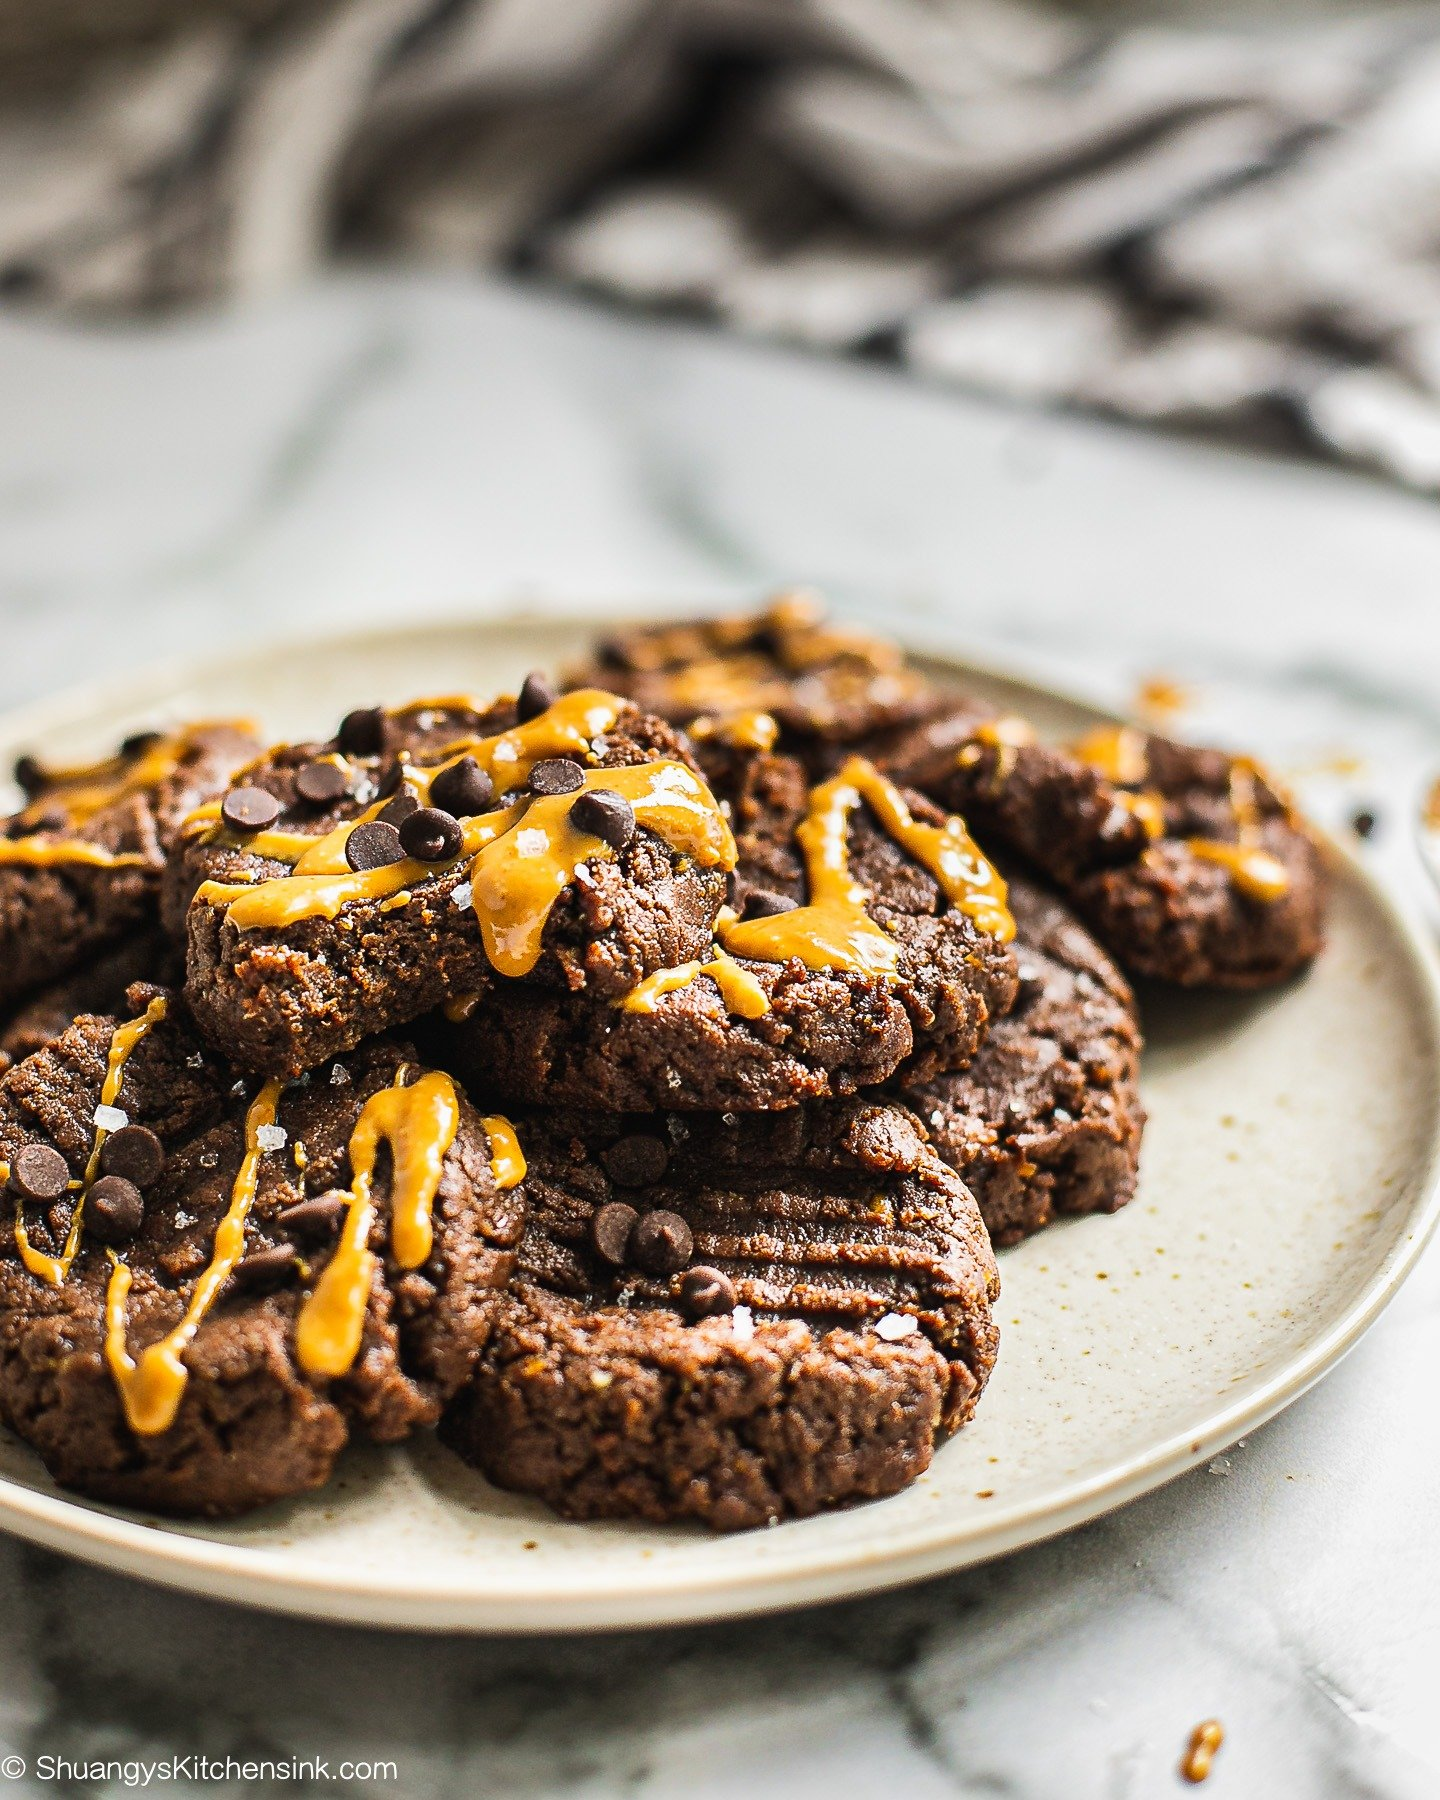 A plate of no bake double chocolate cookies. There are some peanut butter and chocolate chips on top.